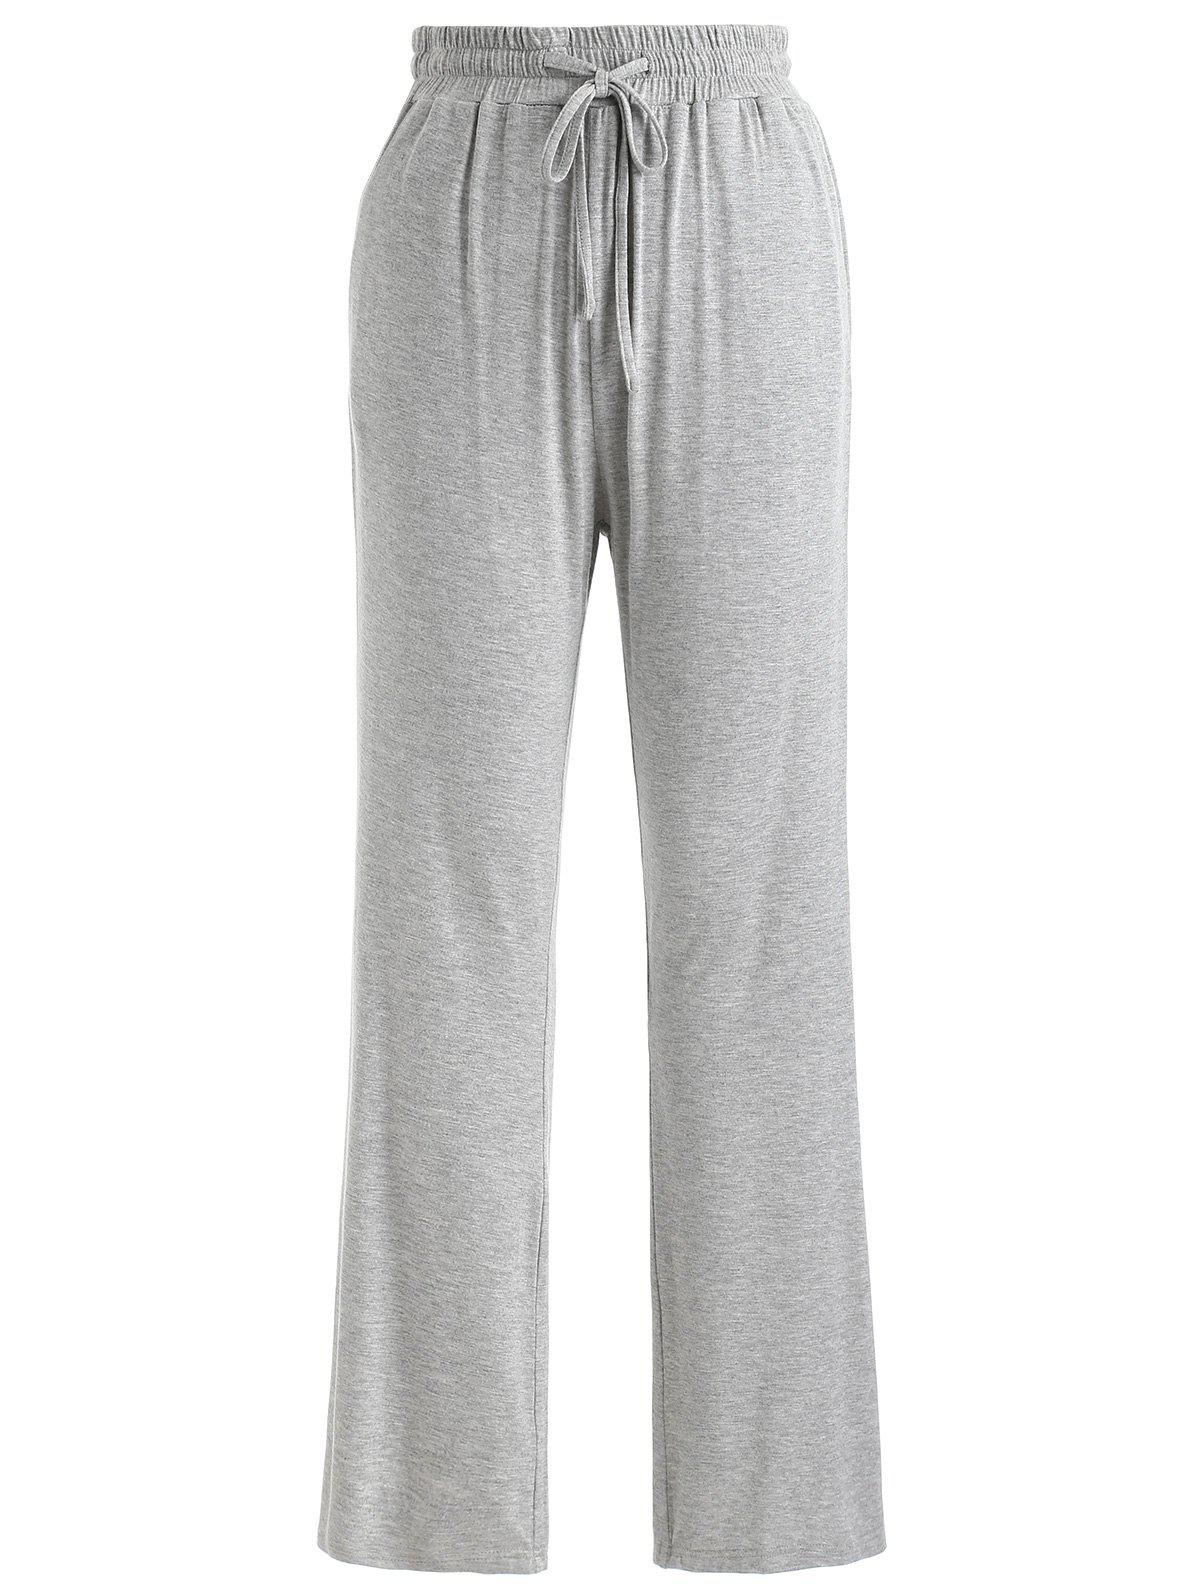 Buy Drawstring Flare Sleeping Pants